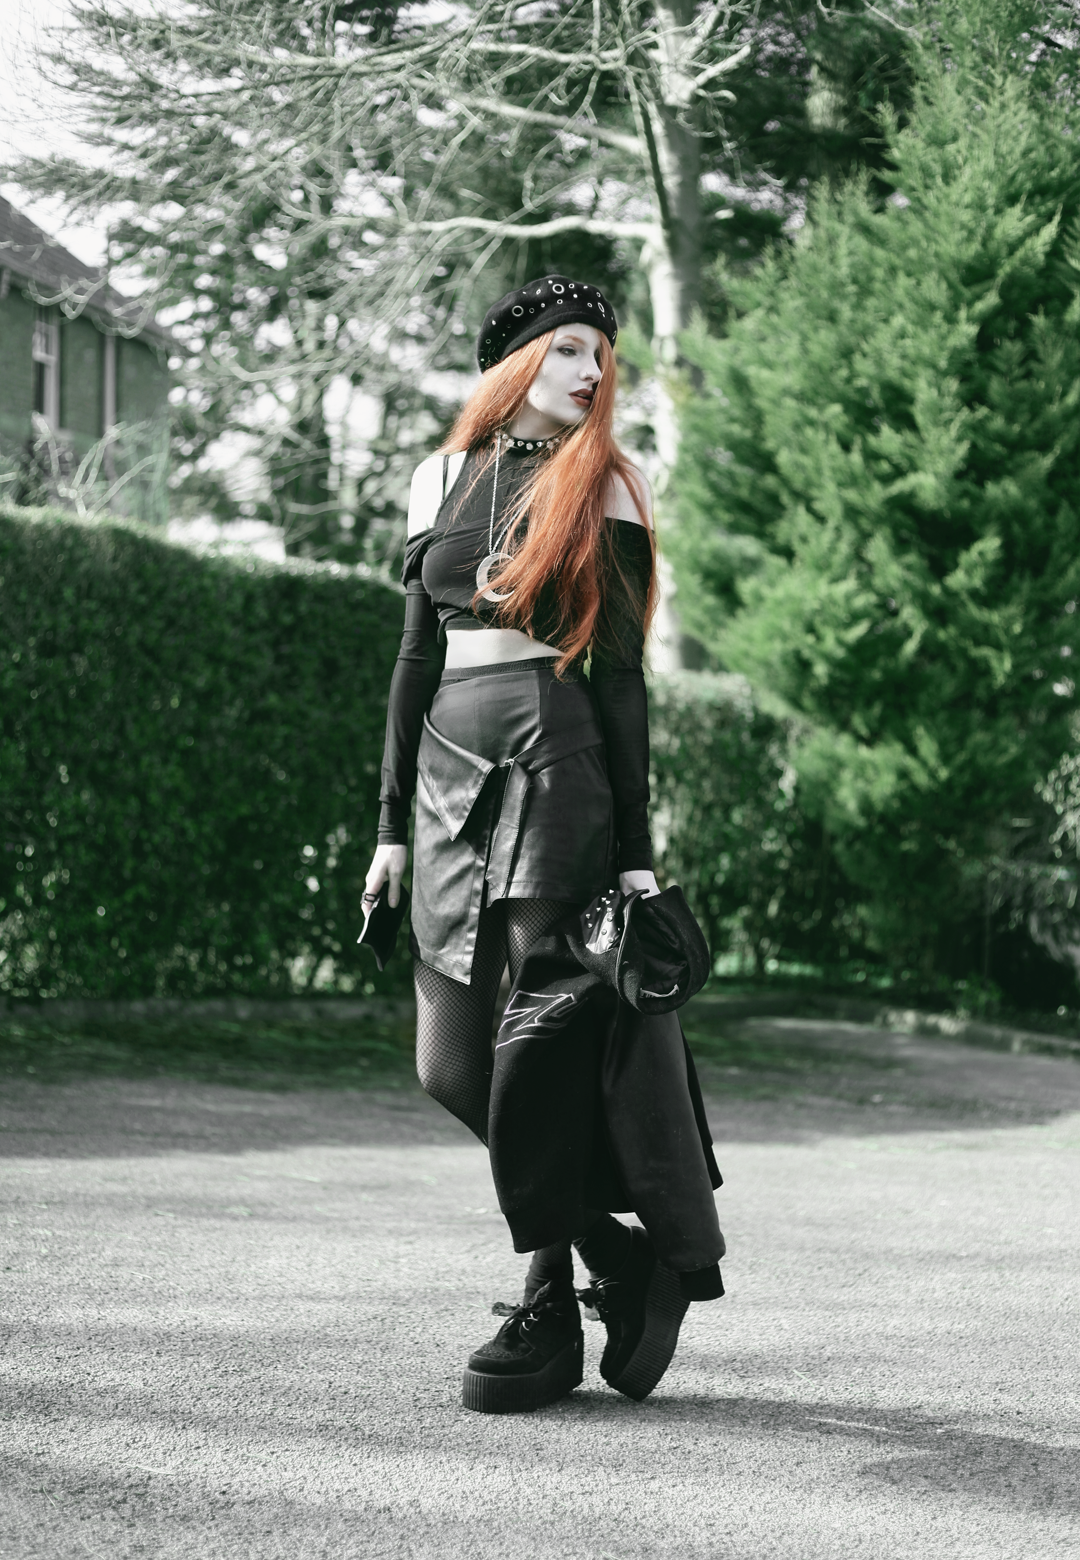 Olivia Emily wears Asos Eyelet beret, Killstar Luna Moon Necklace, Yayer high neck crop top under Asos Tall mesh off the shoulder wrap top, Vintage baseball jacket, asos faux leather wrap skirt & Underground triple sole creepers